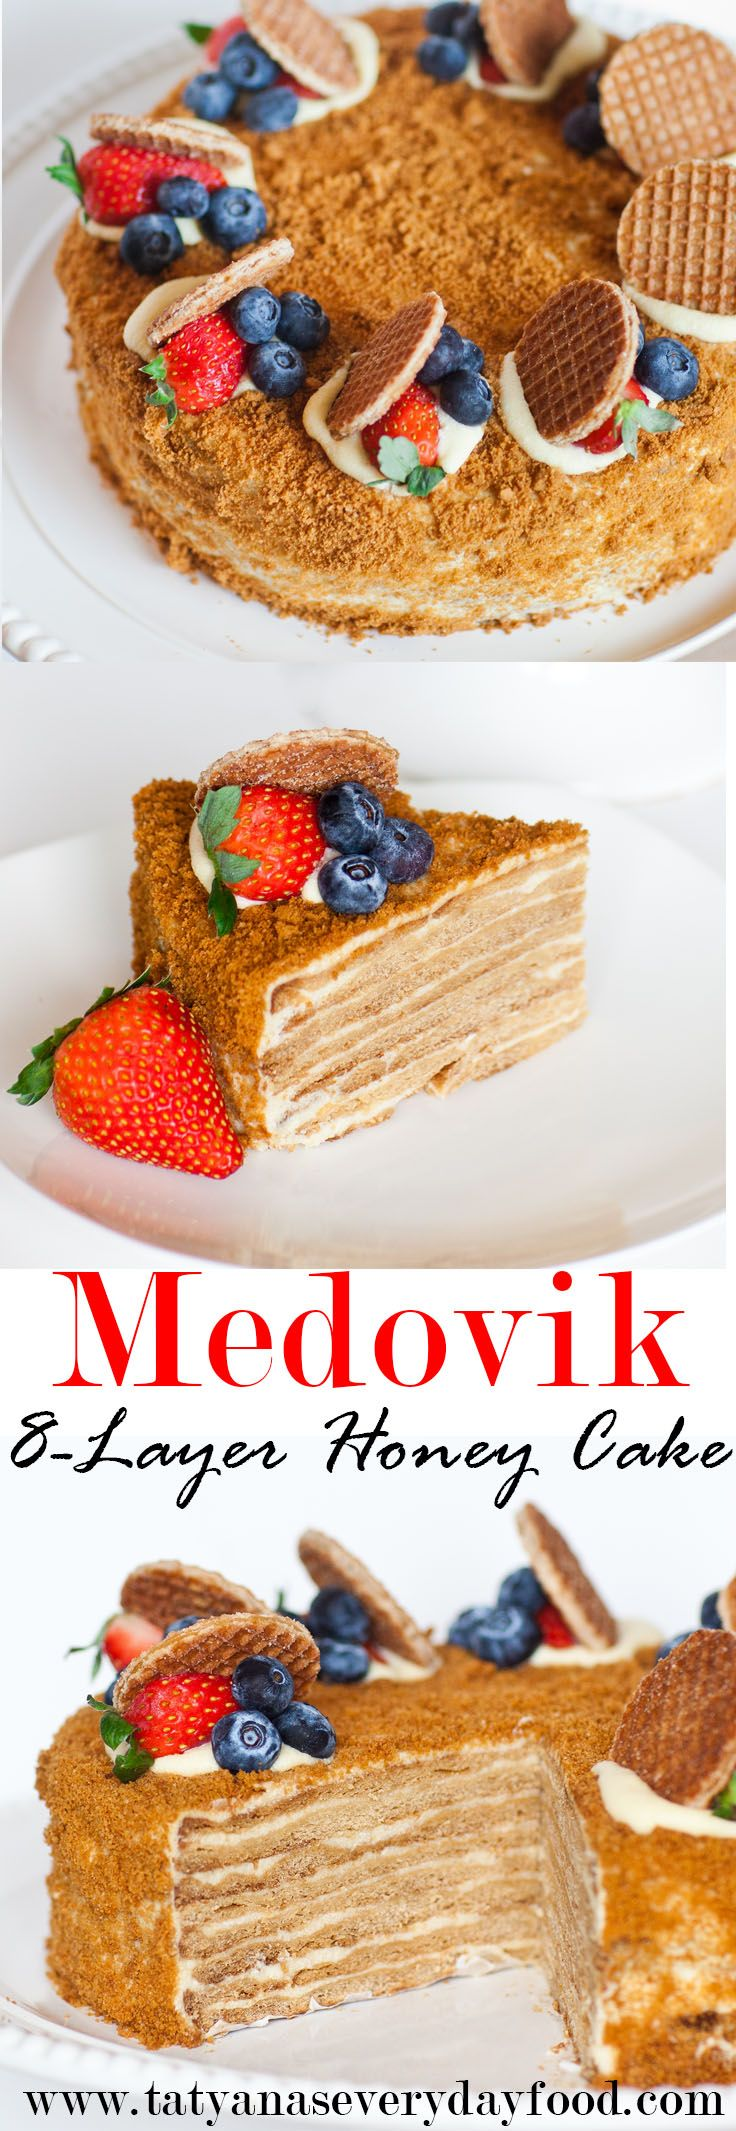 8-Layer Honey Cake ~ Medovik Torte with video recipe! {Tatyana's Everyday Food}